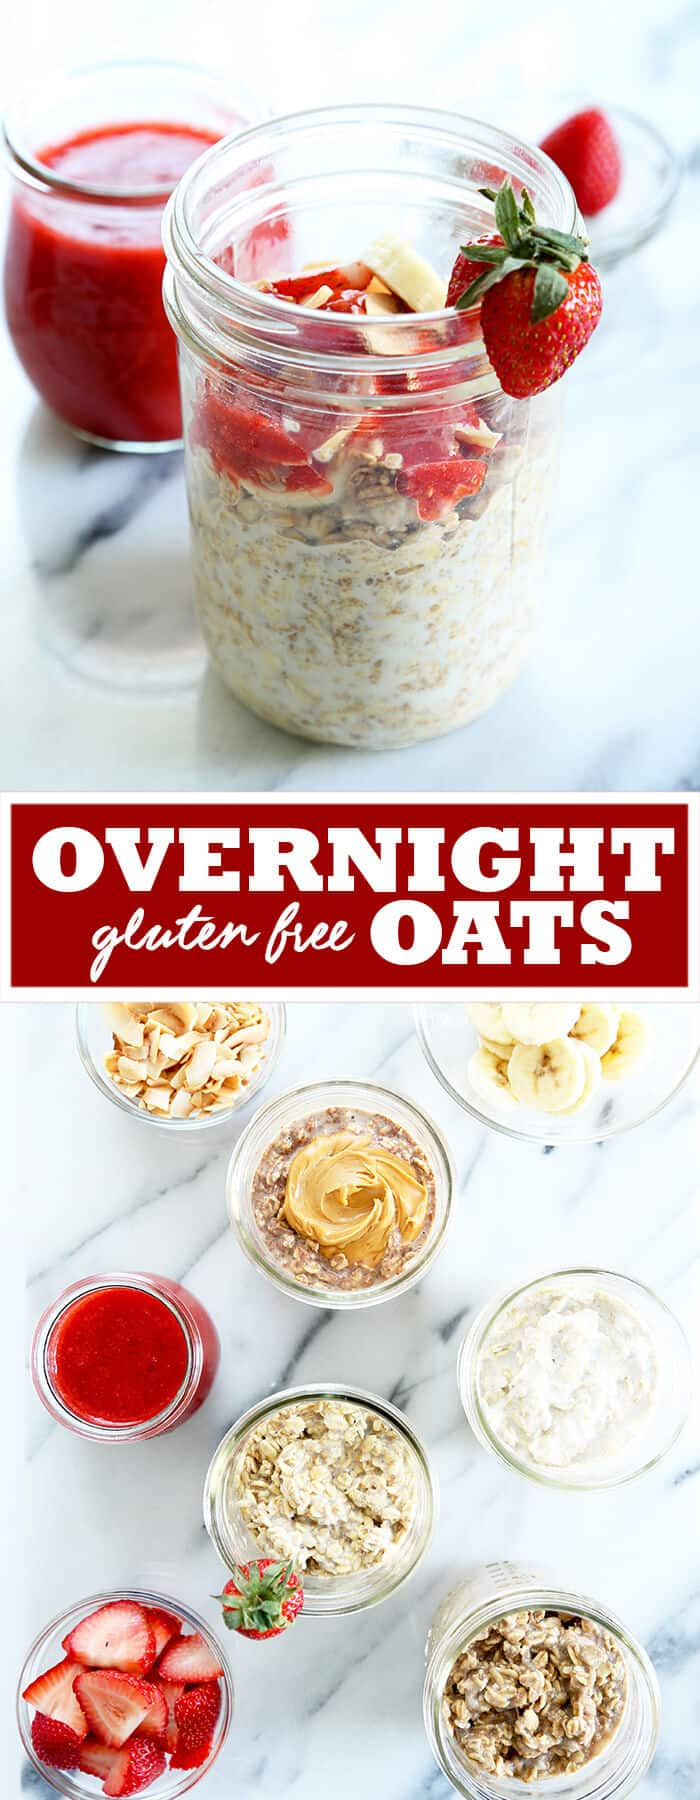 Gluten free overnight oats are made with just rolled oats, some seeds and any sort of milk, and take less than 5 minutes of prep time. A fast, nutritious and filling breakfast, with endless flavor variations! https://glutenfreeonashoestring.com/overnight-oats/